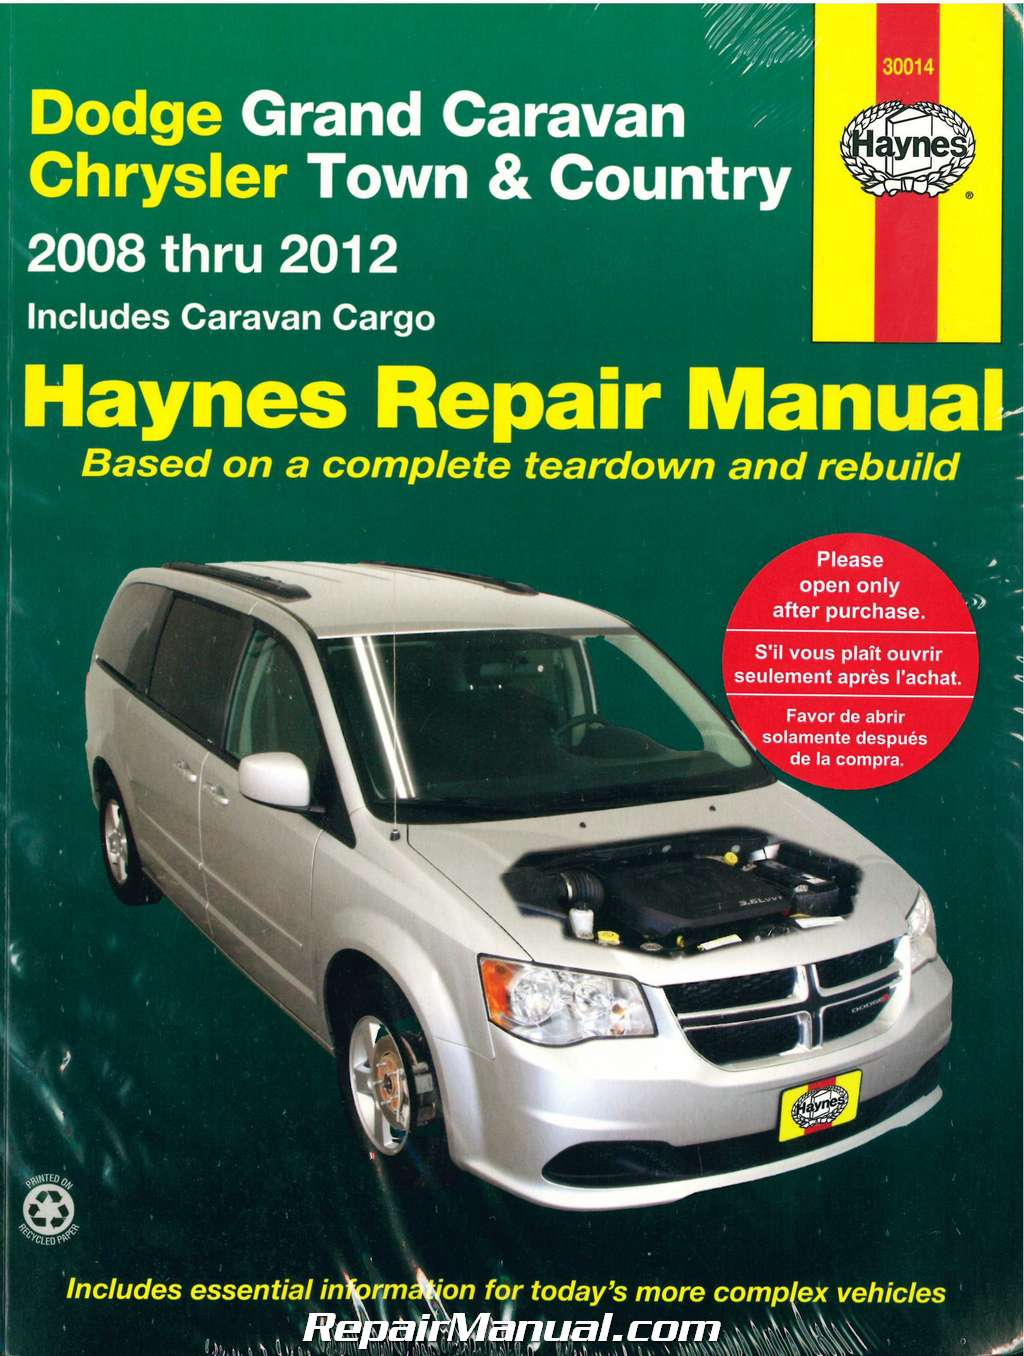 2011 dodge grand caravan review autos post. Black Bedroom Furniture Sets. Home Design Ideas